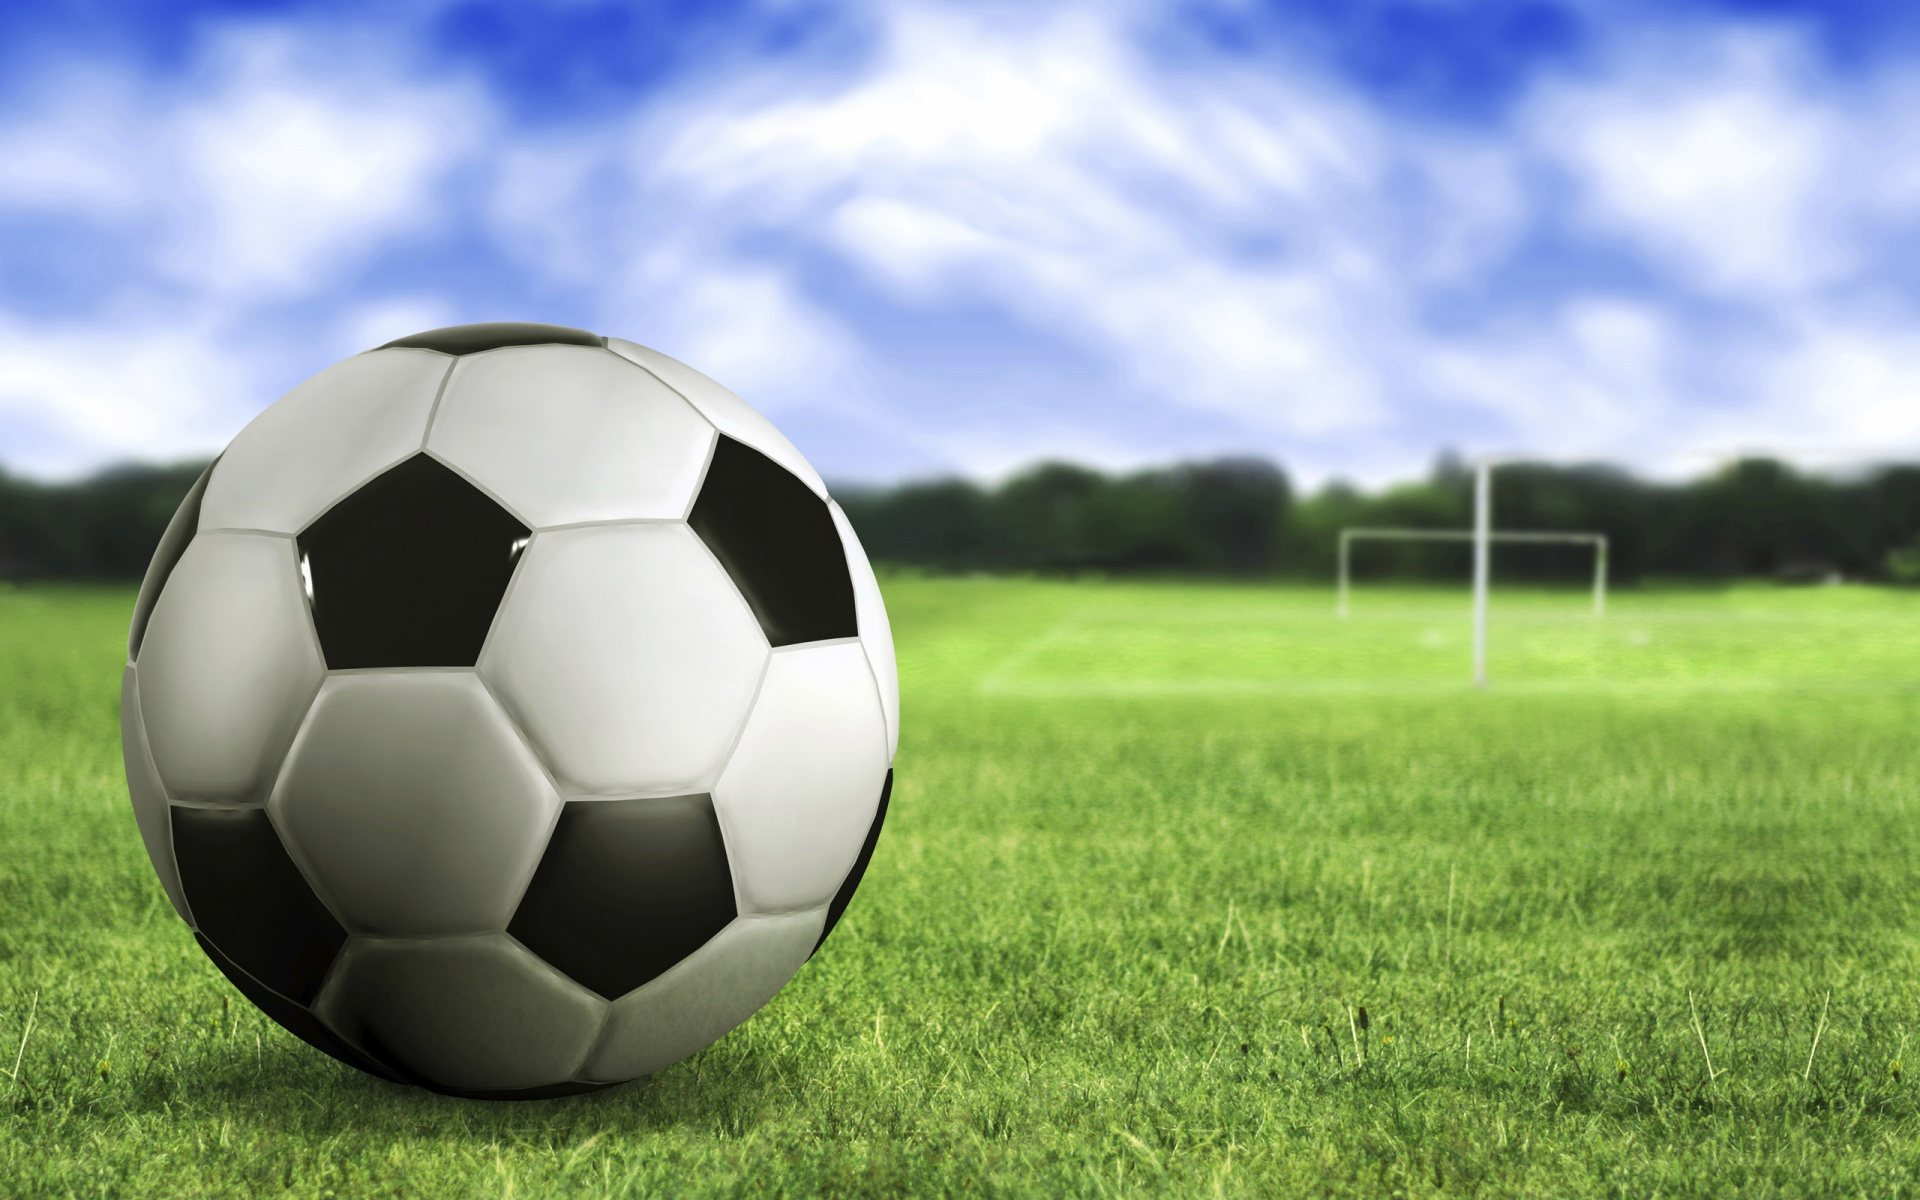 1920x1200 Soccer ball on the grass desktop PC and Mac wallpaper 1920x1200